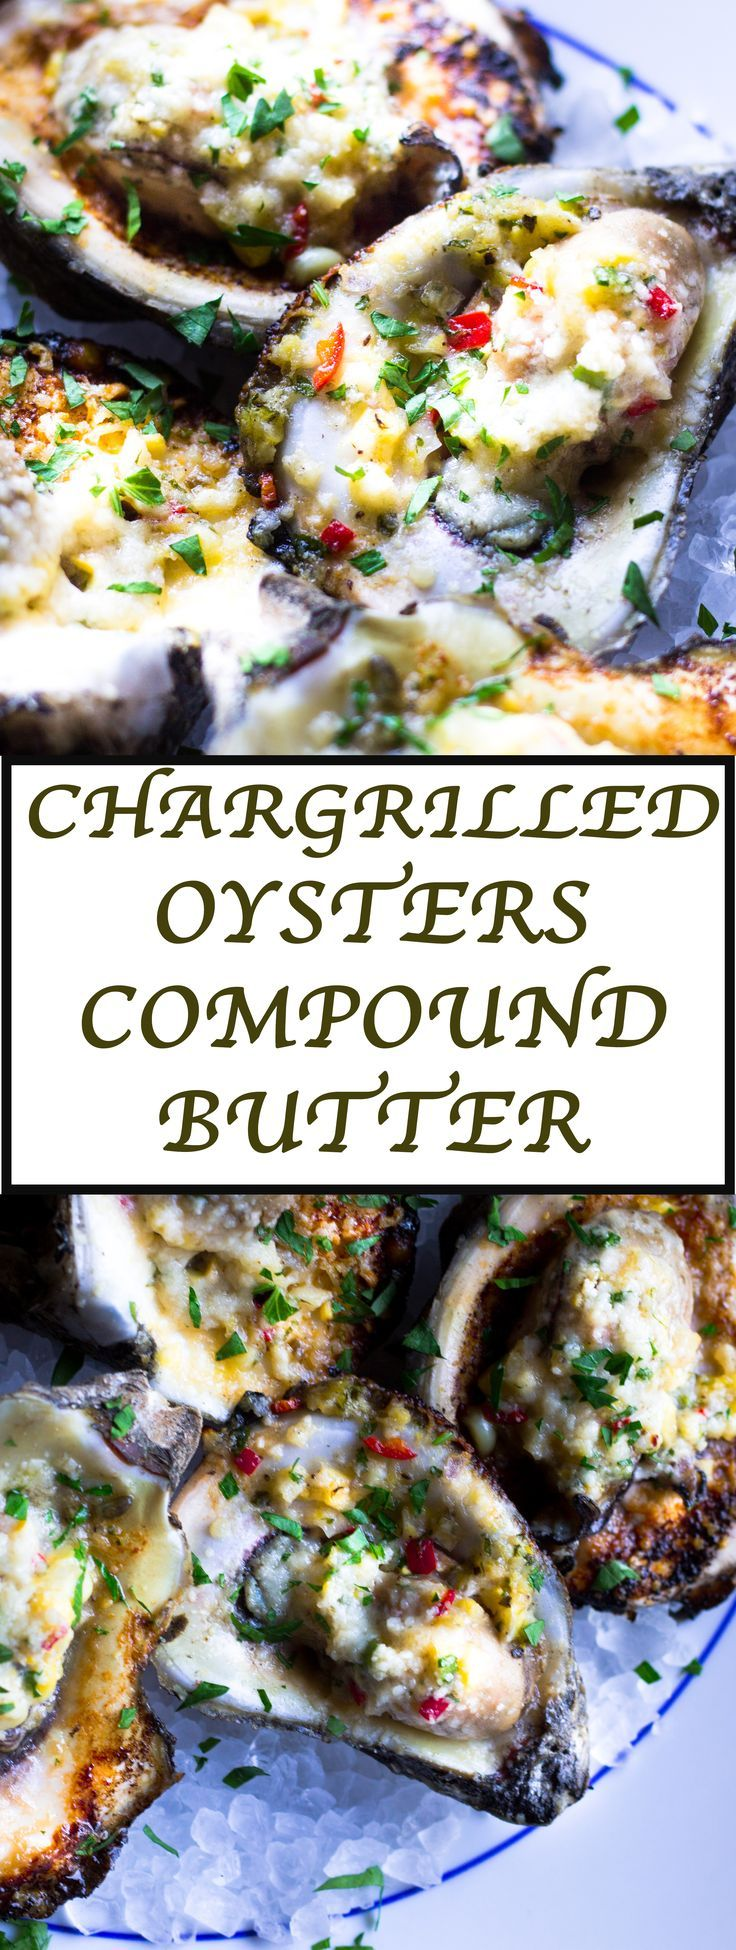 Delicious and addicting chargrilled oysters inspired by the famous Drago's restaurant in New Orleans. Oysters topped with a compound butter and grilled until bubbling hot! So good!